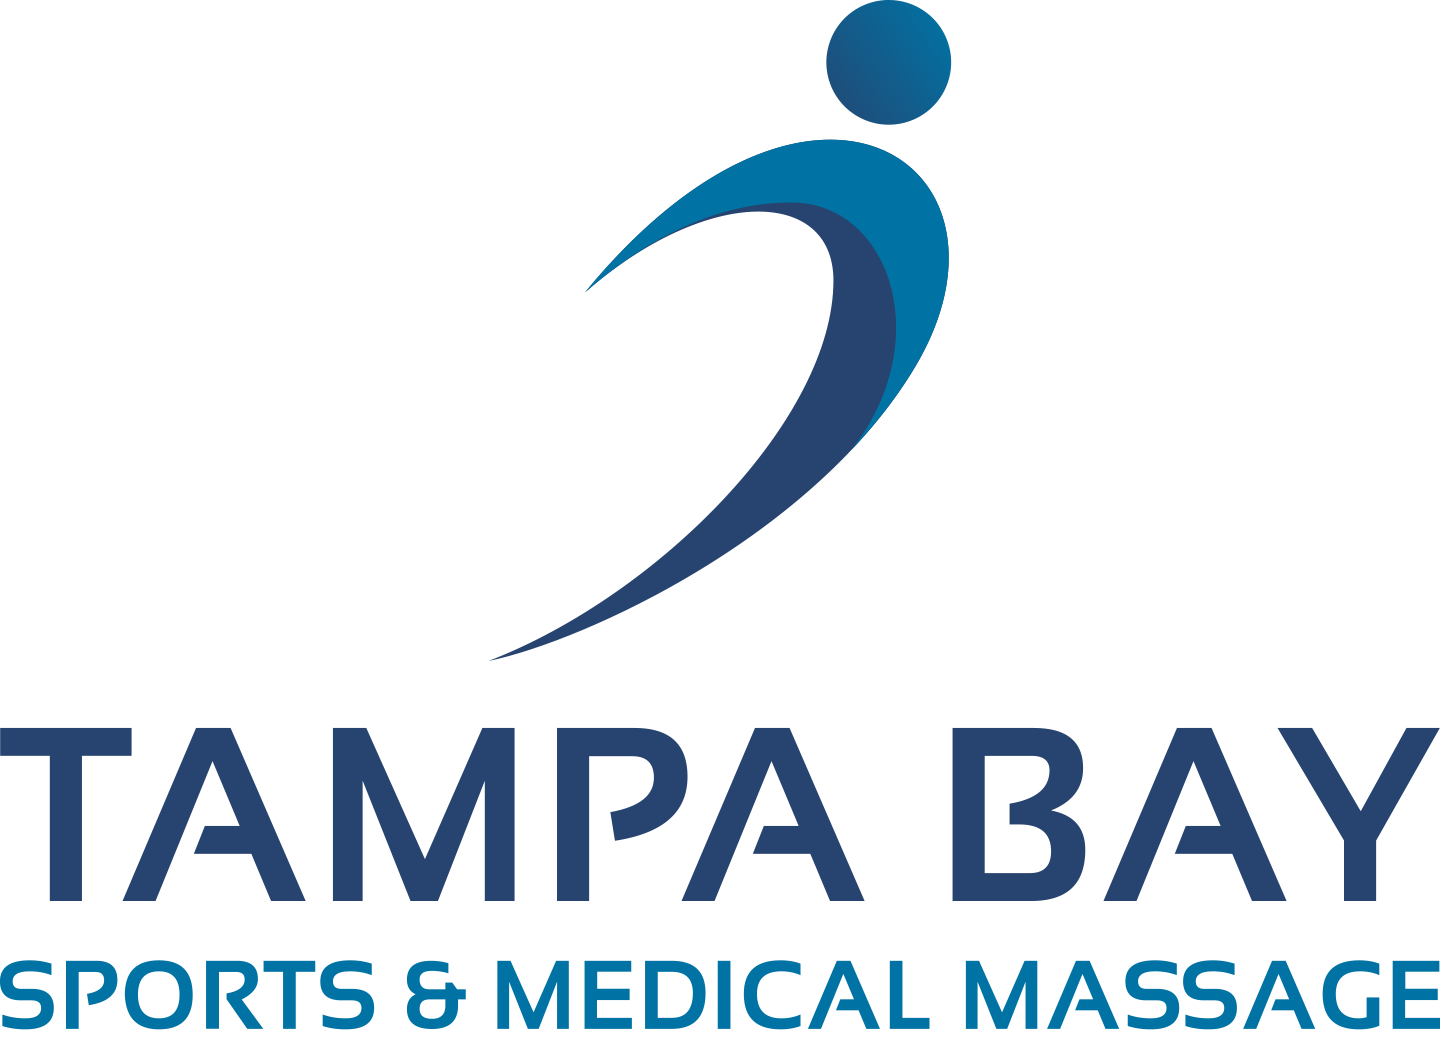 Tampa Massage Therapist | Tampa Bay Sports & Medical Massage